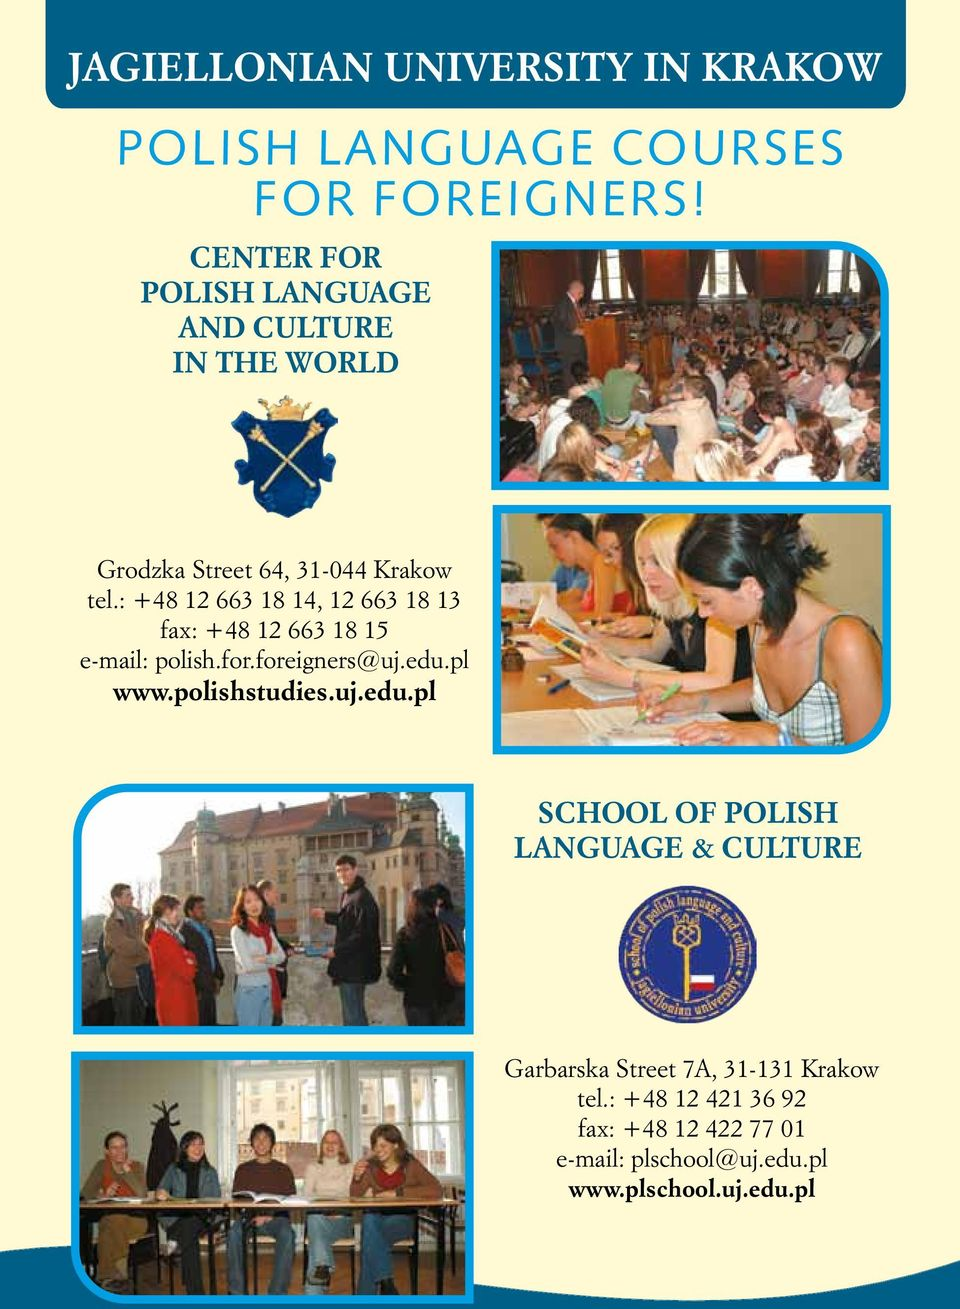 : +48 12 663 18 14, 12 663 18 13 fax: +48 12 663 18 15 e-mail: polish.for.foreigners@uj.edu.pl www.polishstudies.